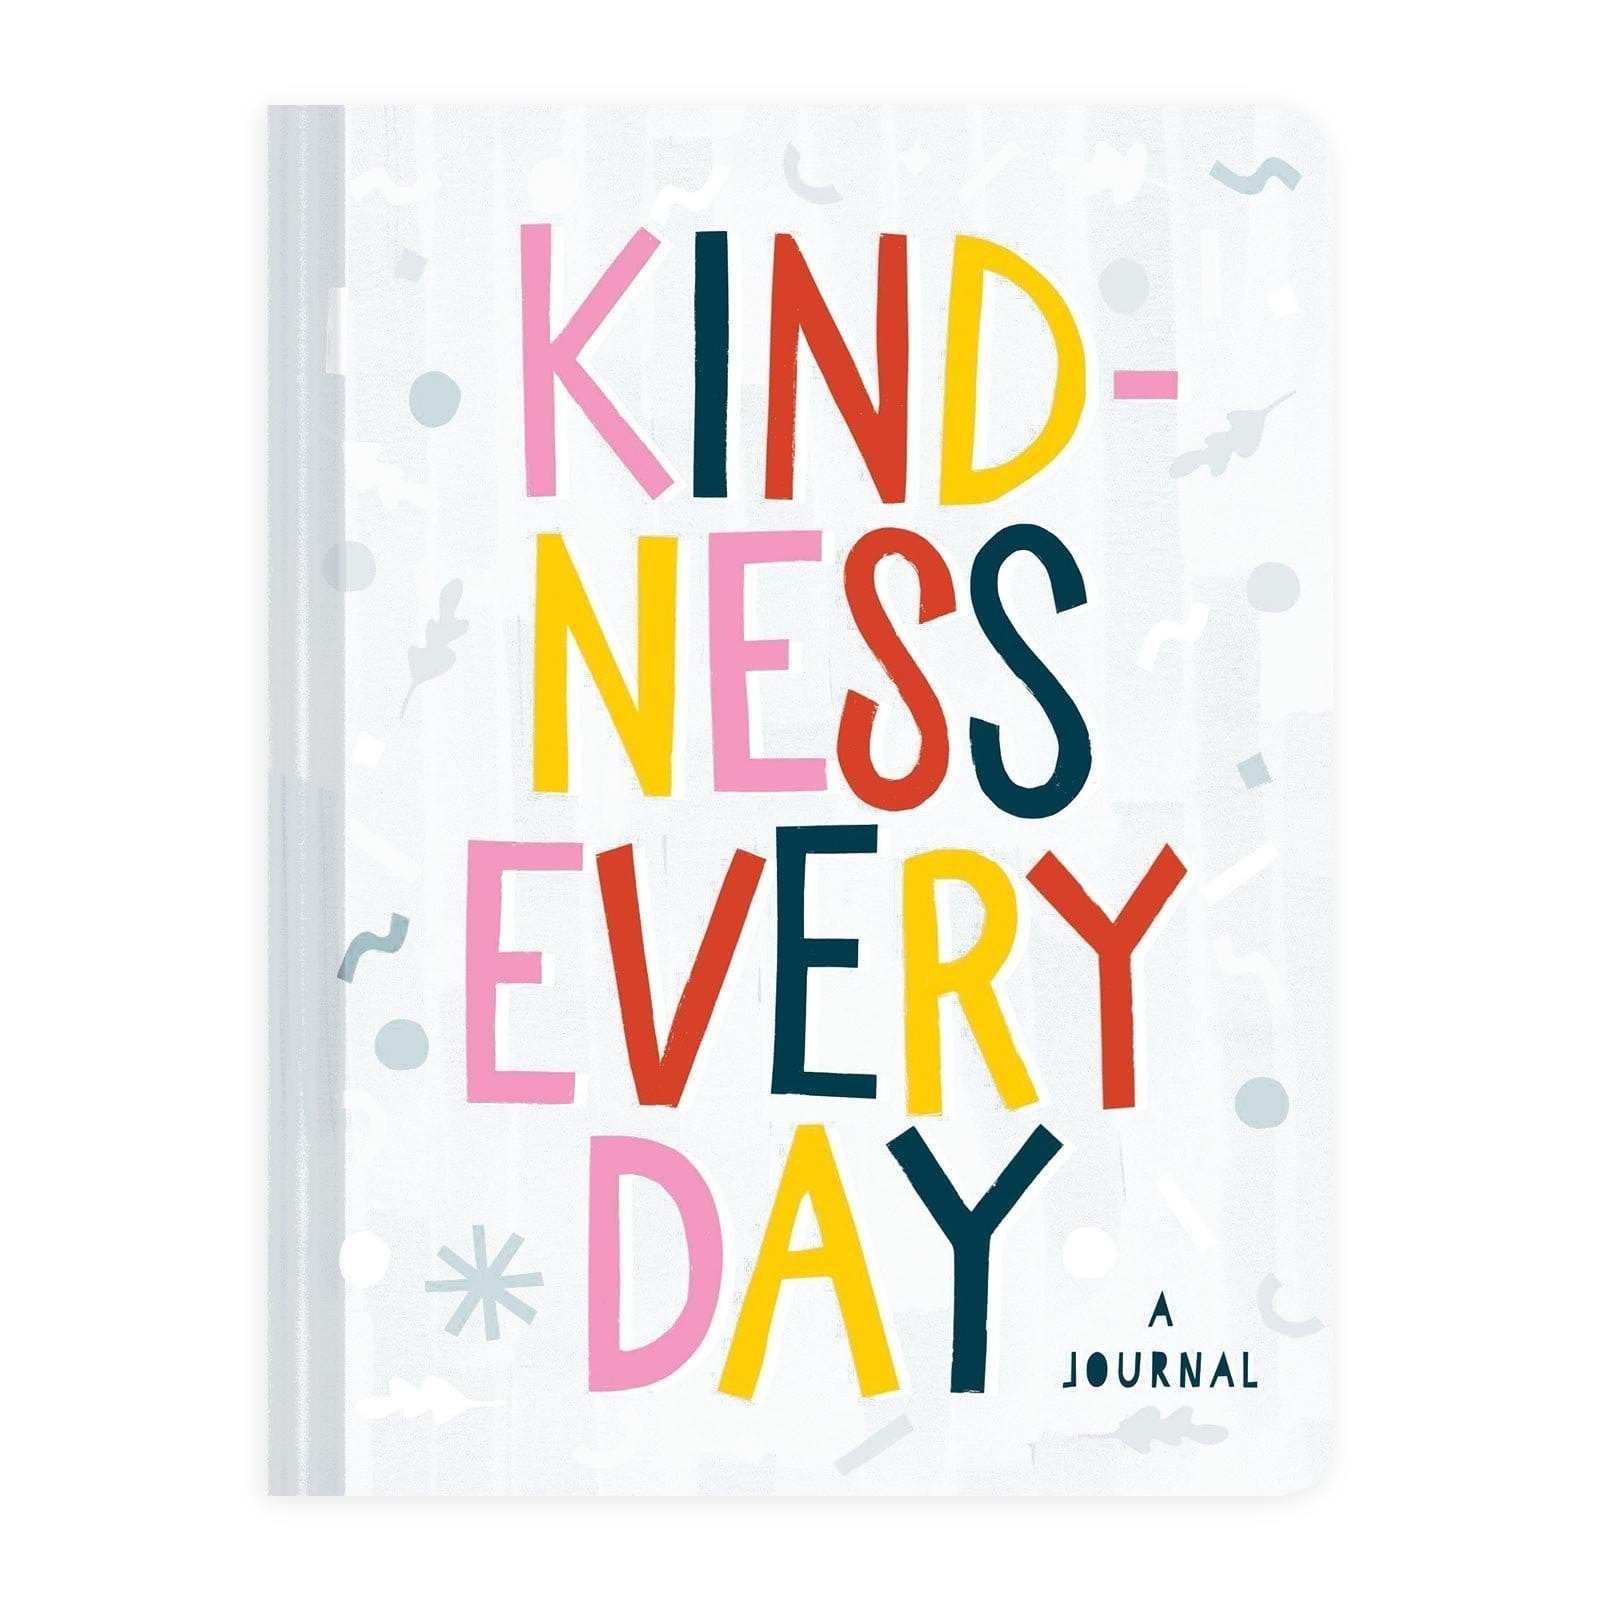 Kindness Every Day - A Journal